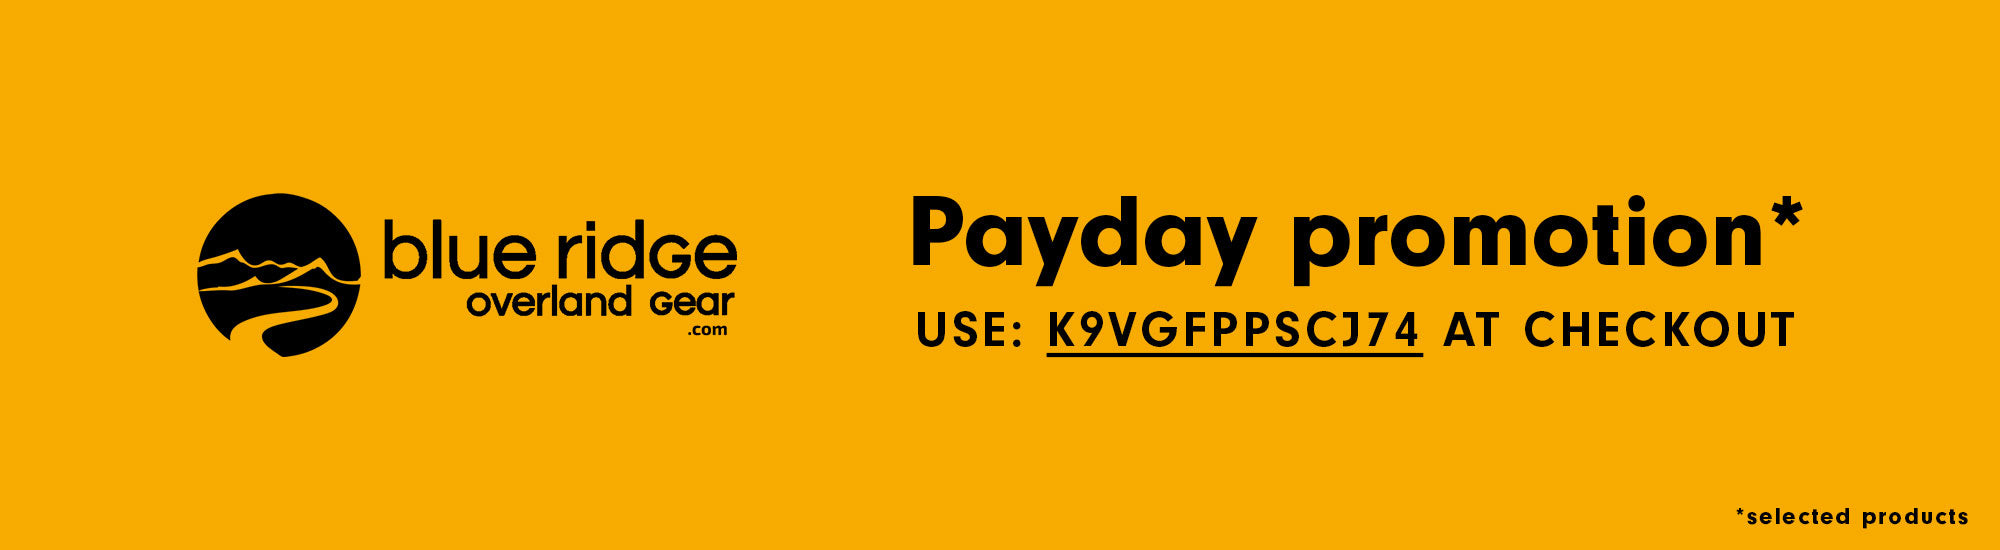 Payday Promotion